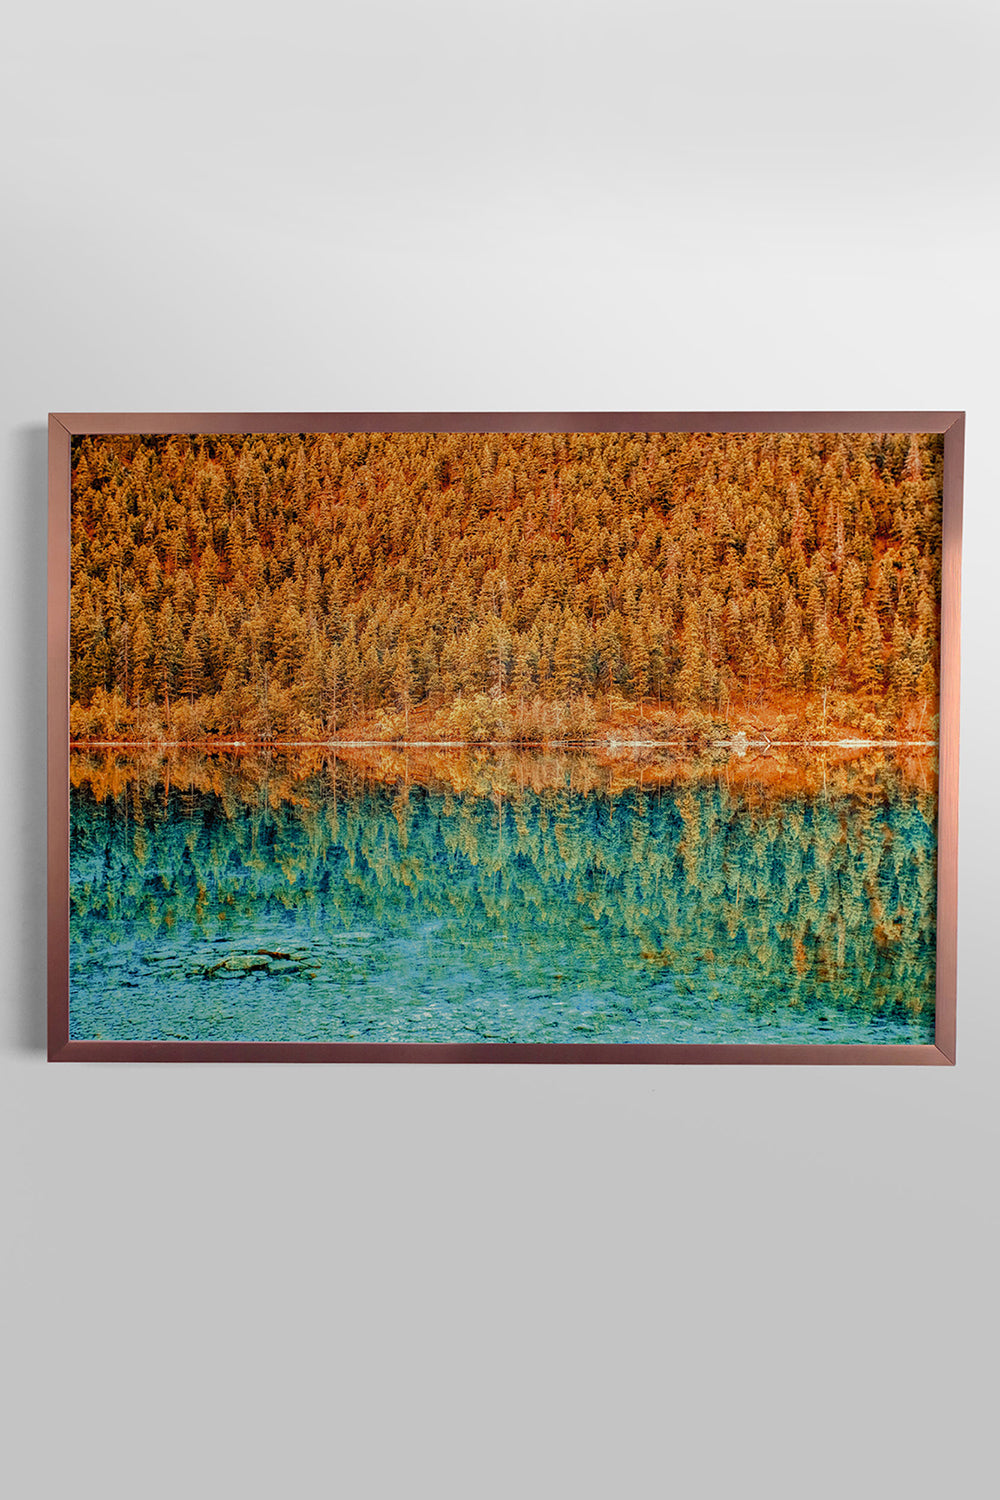 Quadro Copper and Teal 46cm x 64cm